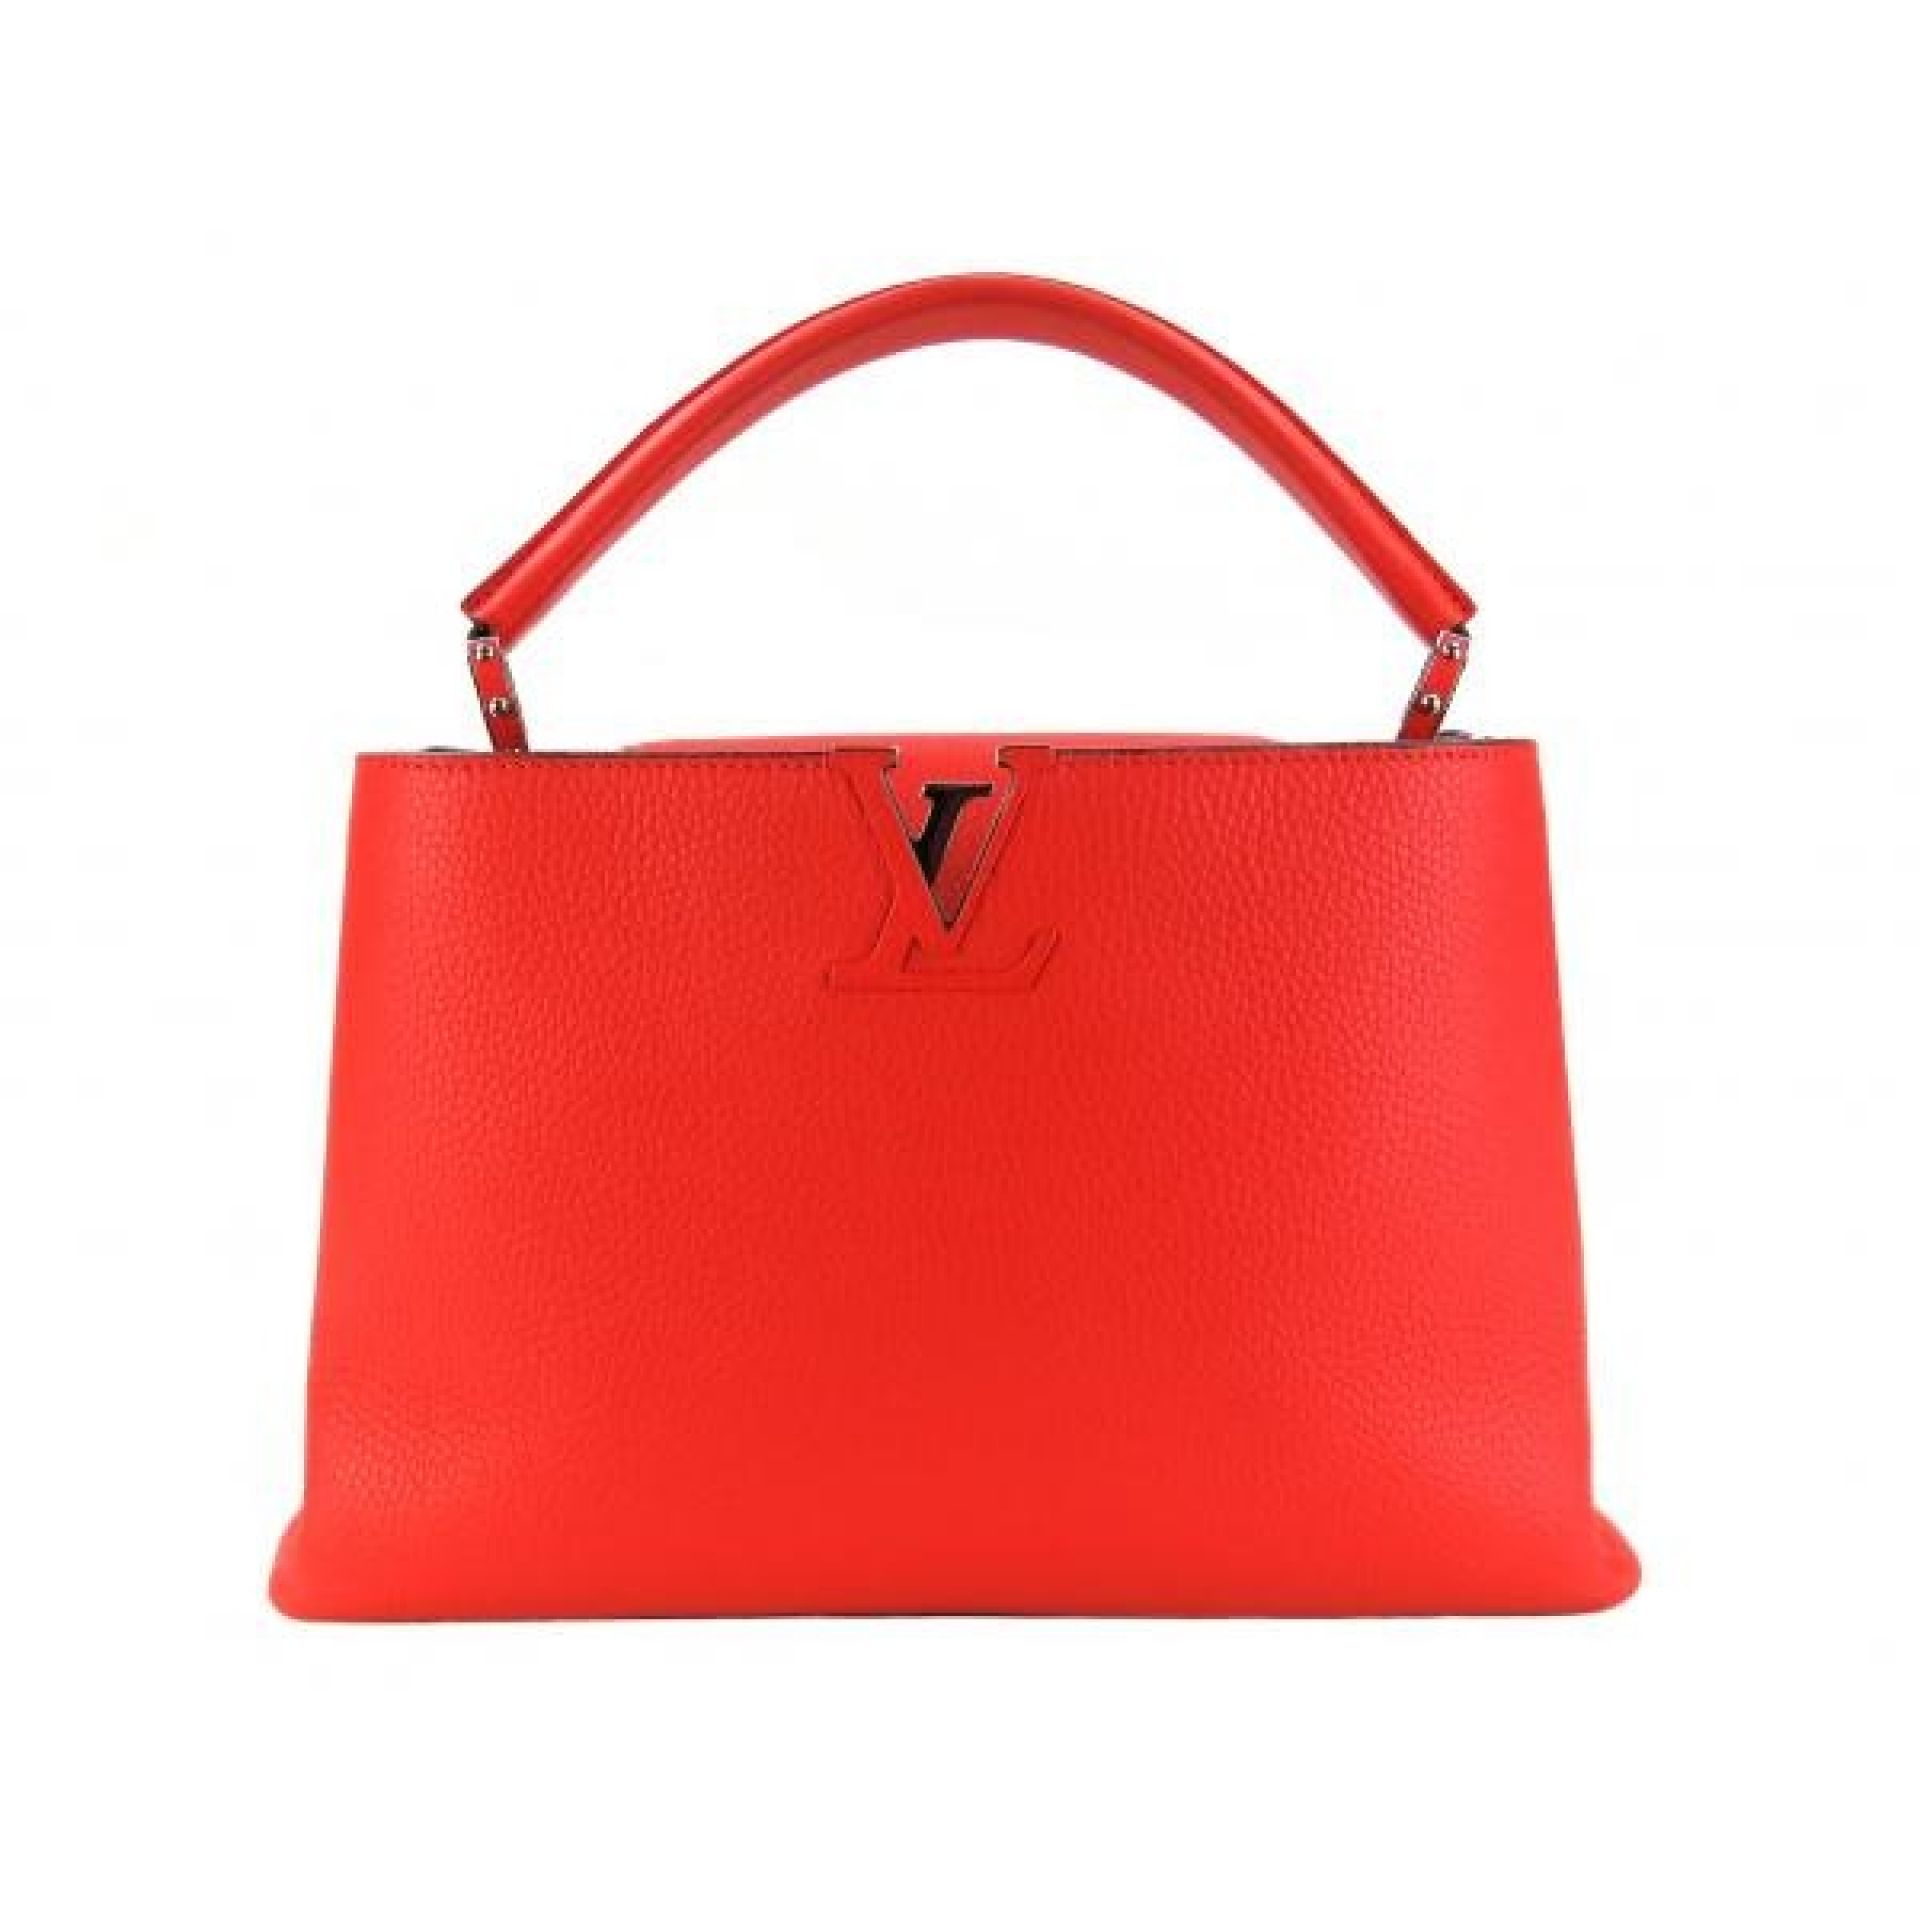 Louis Vuitton Red Taurillion Leather Capucines MM Satchel Bag